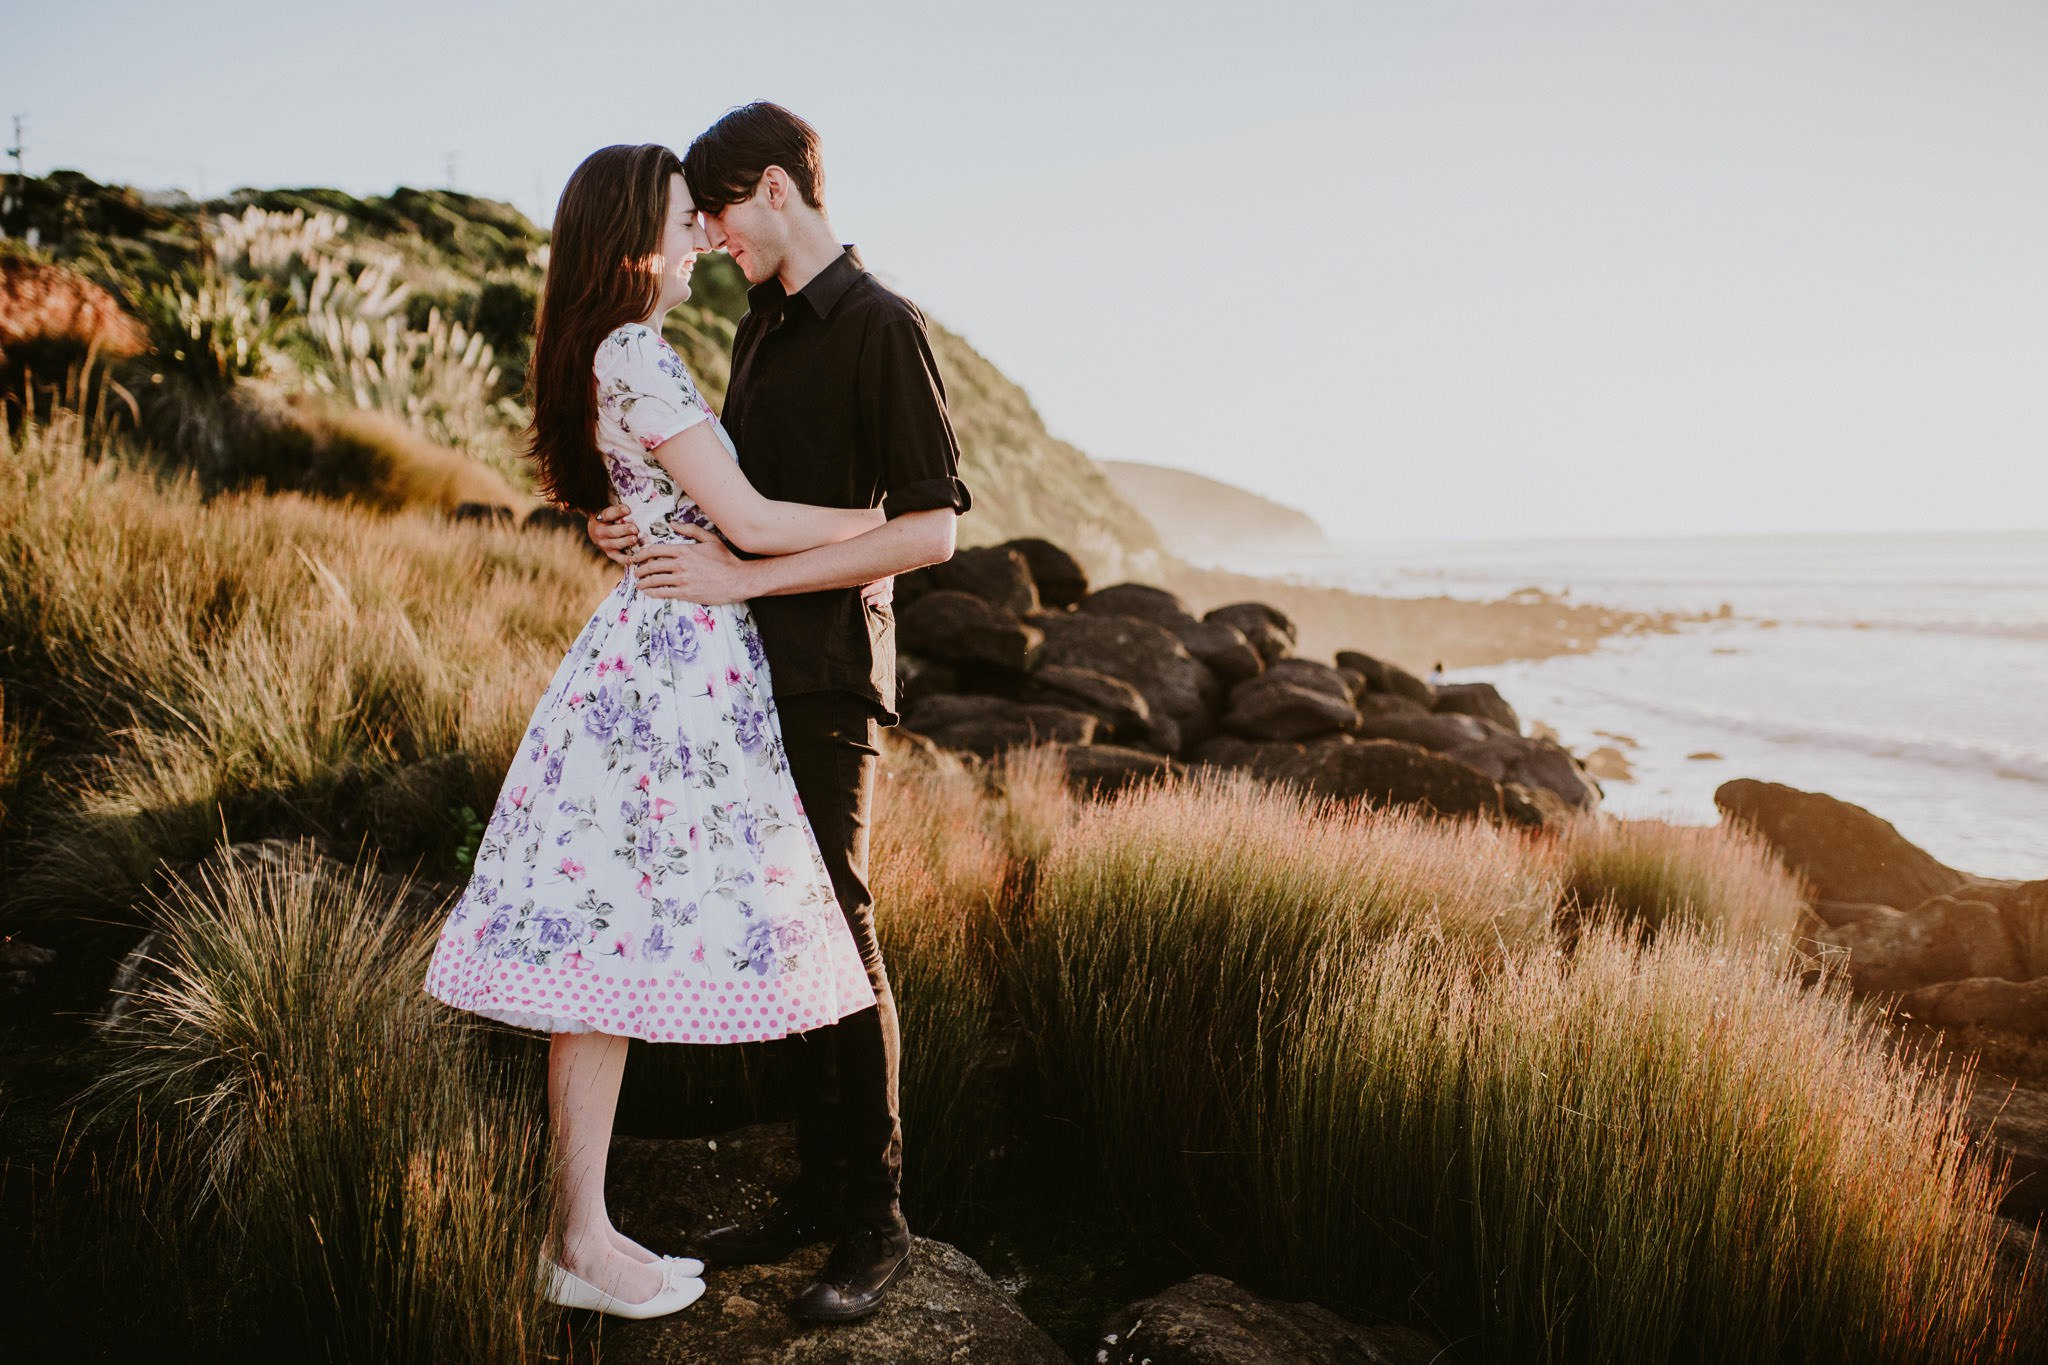 wedding photographer hamilton new zealand 1002 4